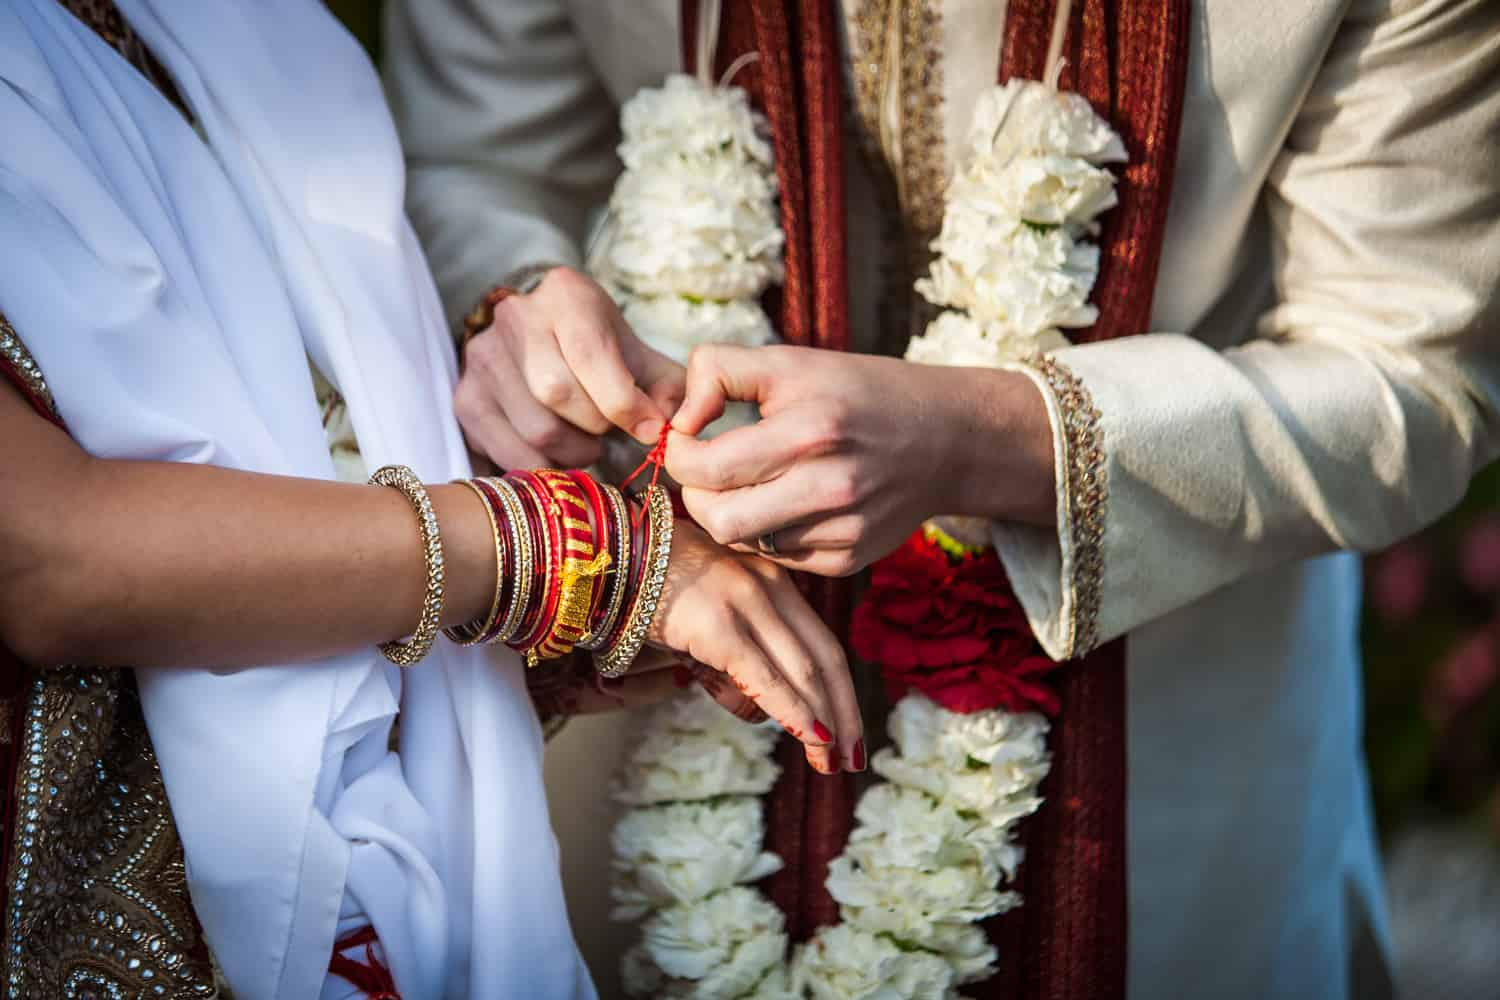 Close up of groom tying bracelet on bride during traditional Hindu wedding ceremony